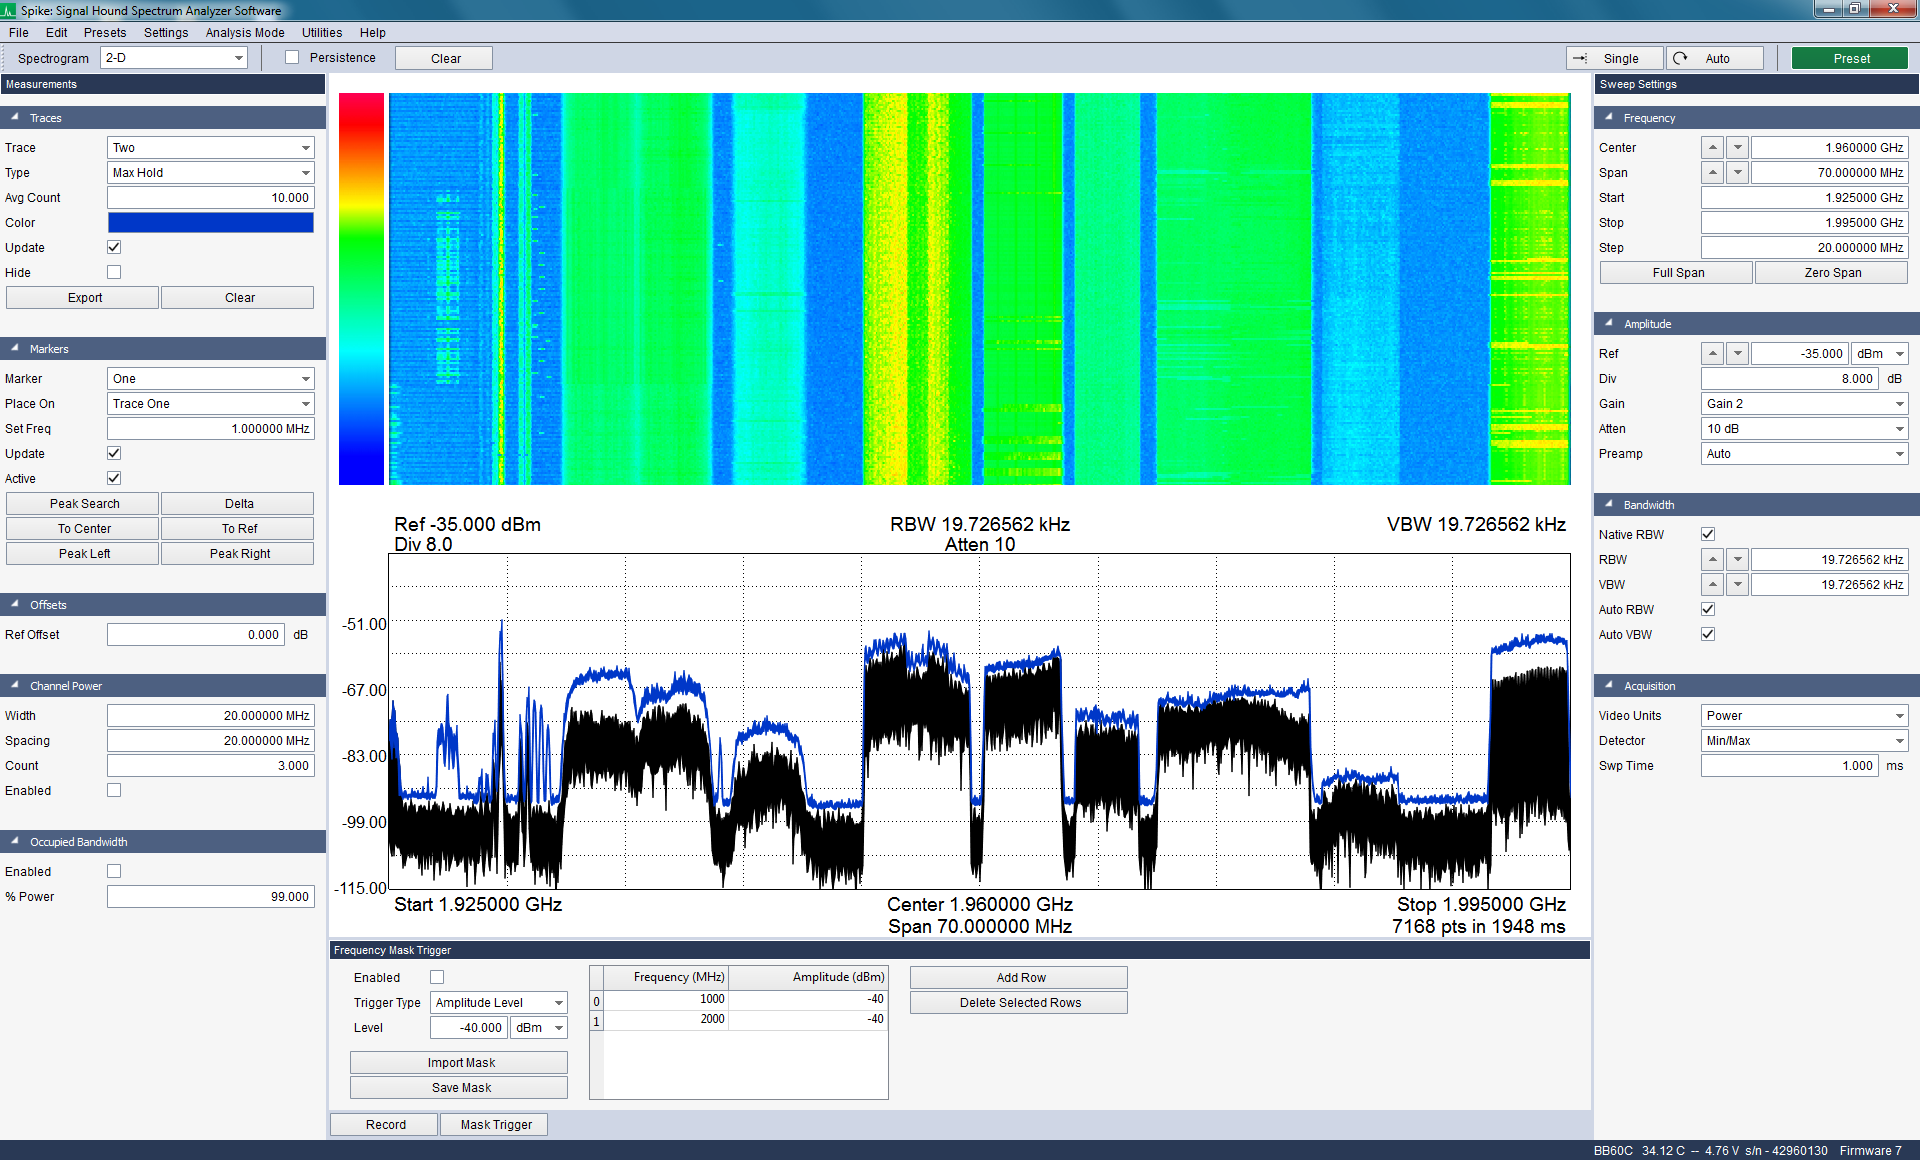 Monitoring a number of cellular frequency bands